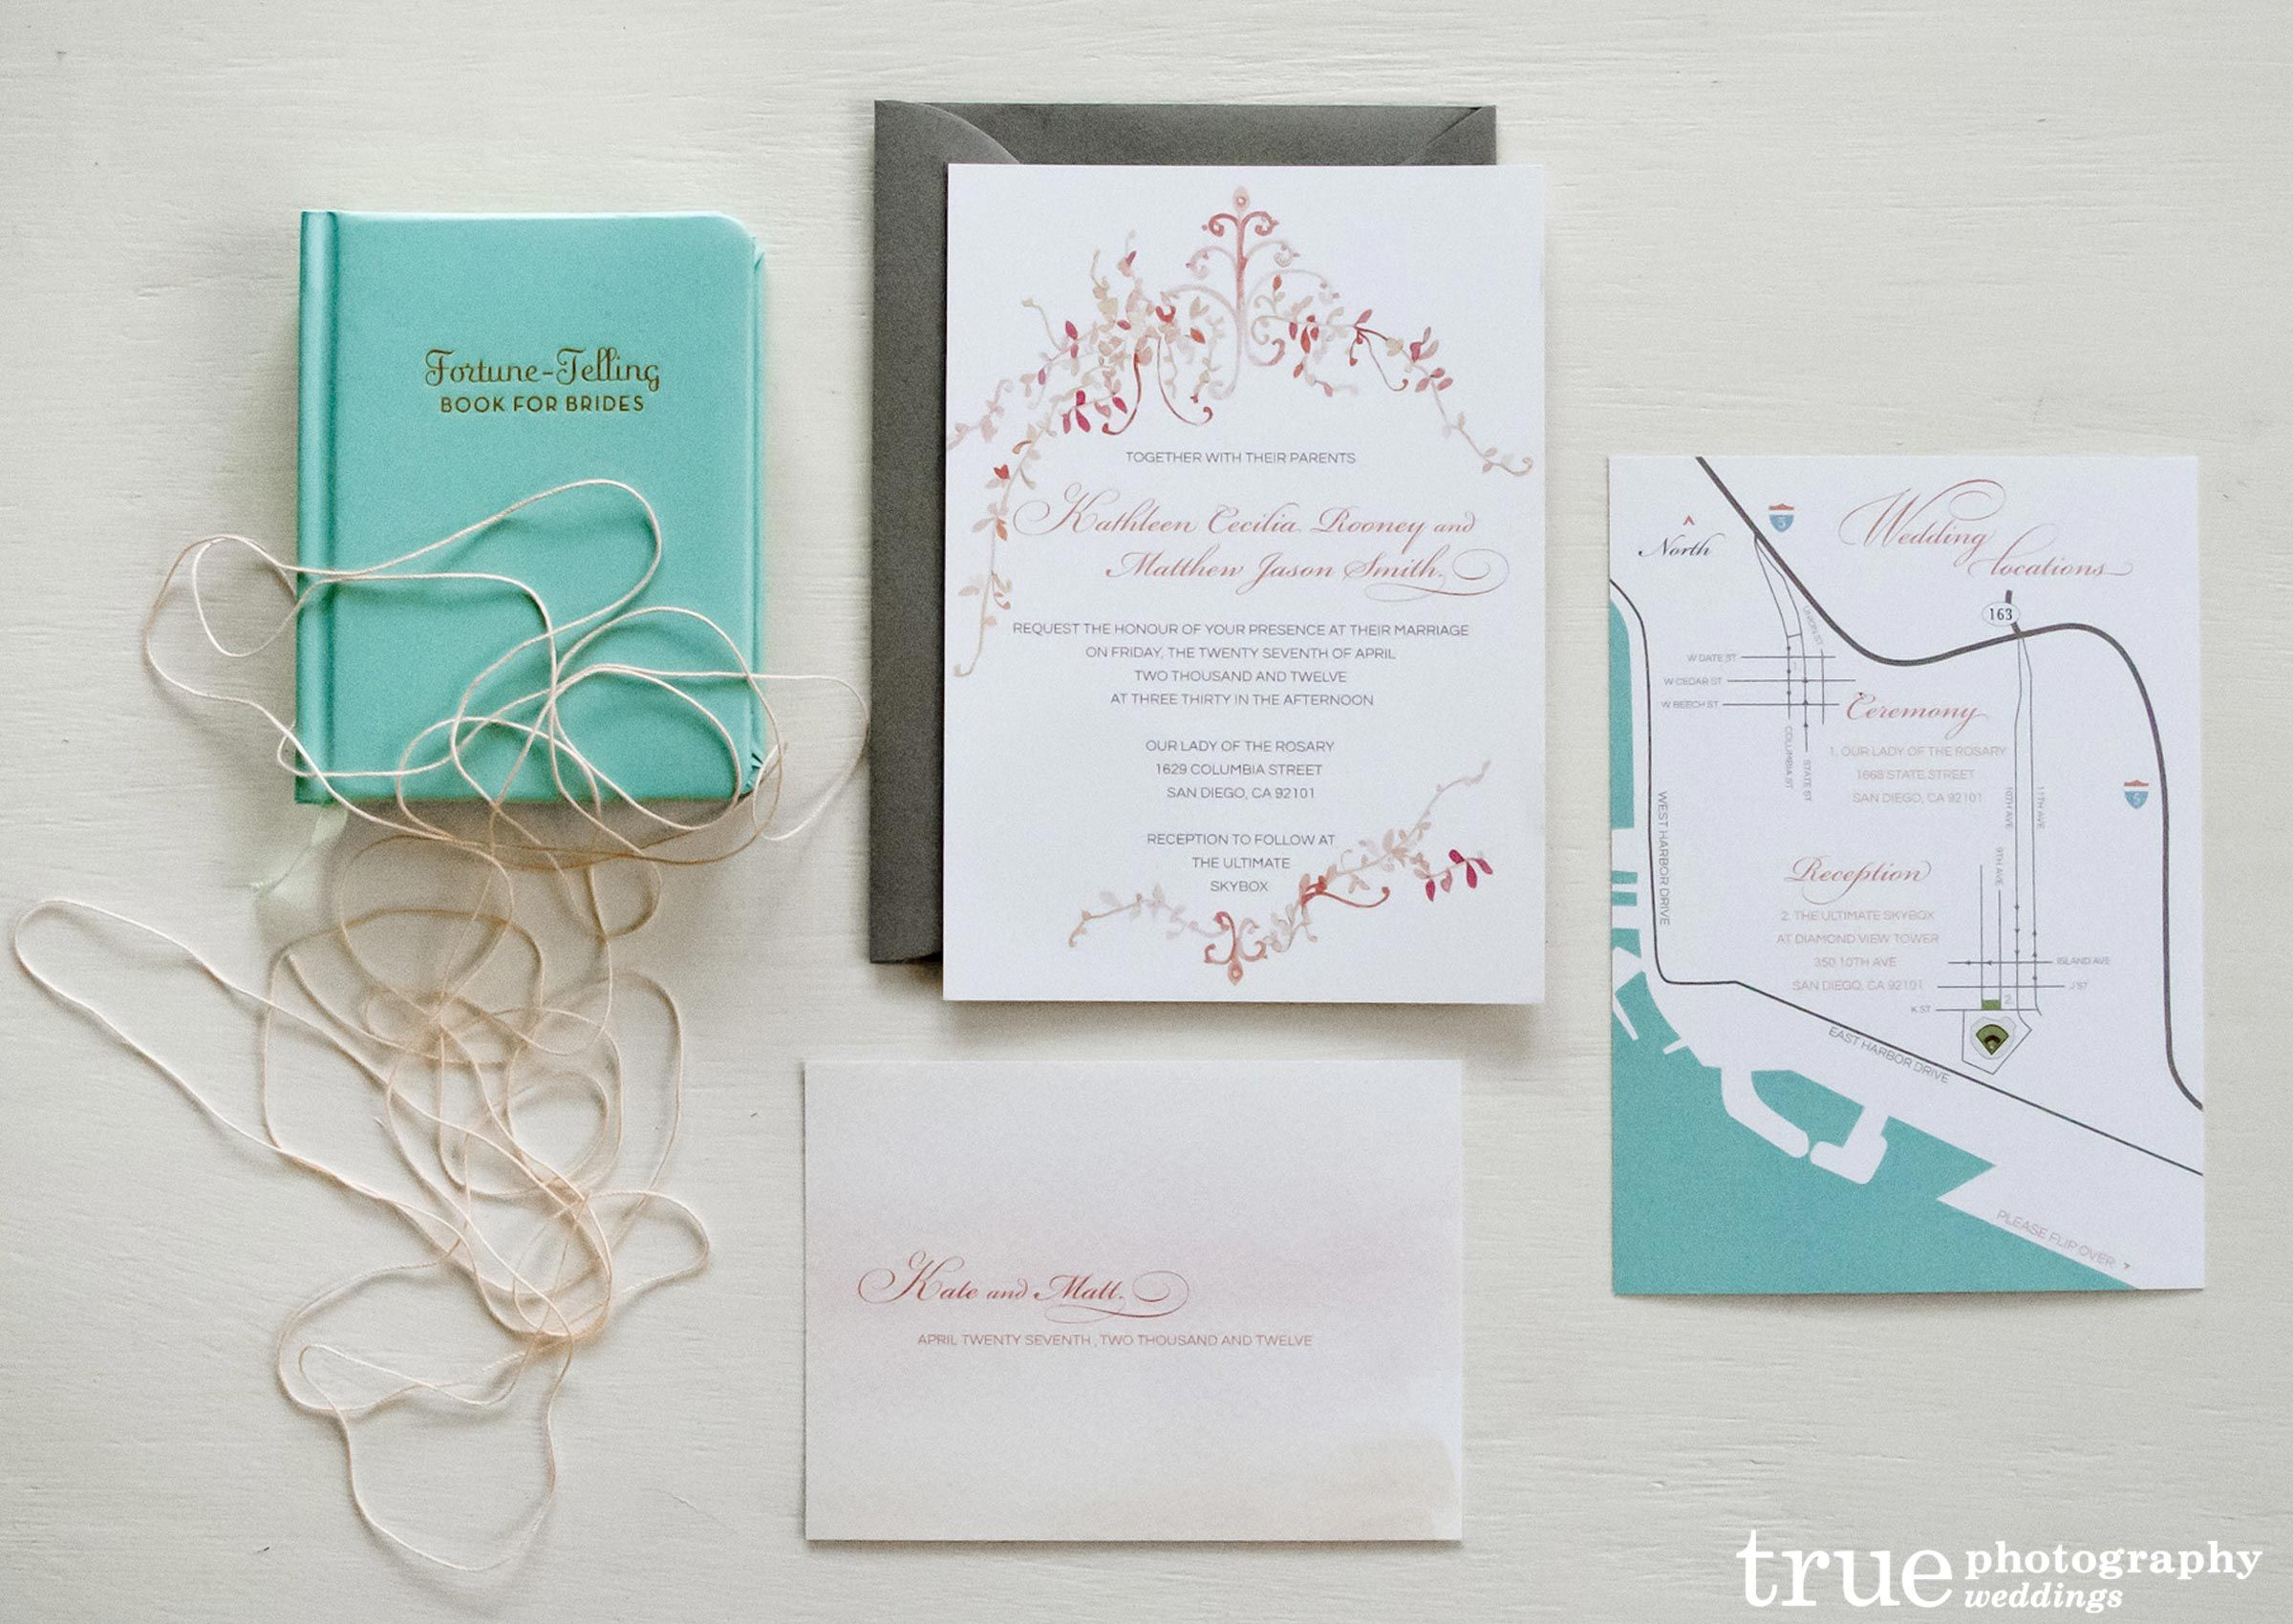 Holiday Cards & Invitations, Alfie Design Creates Custom Watercolor ...